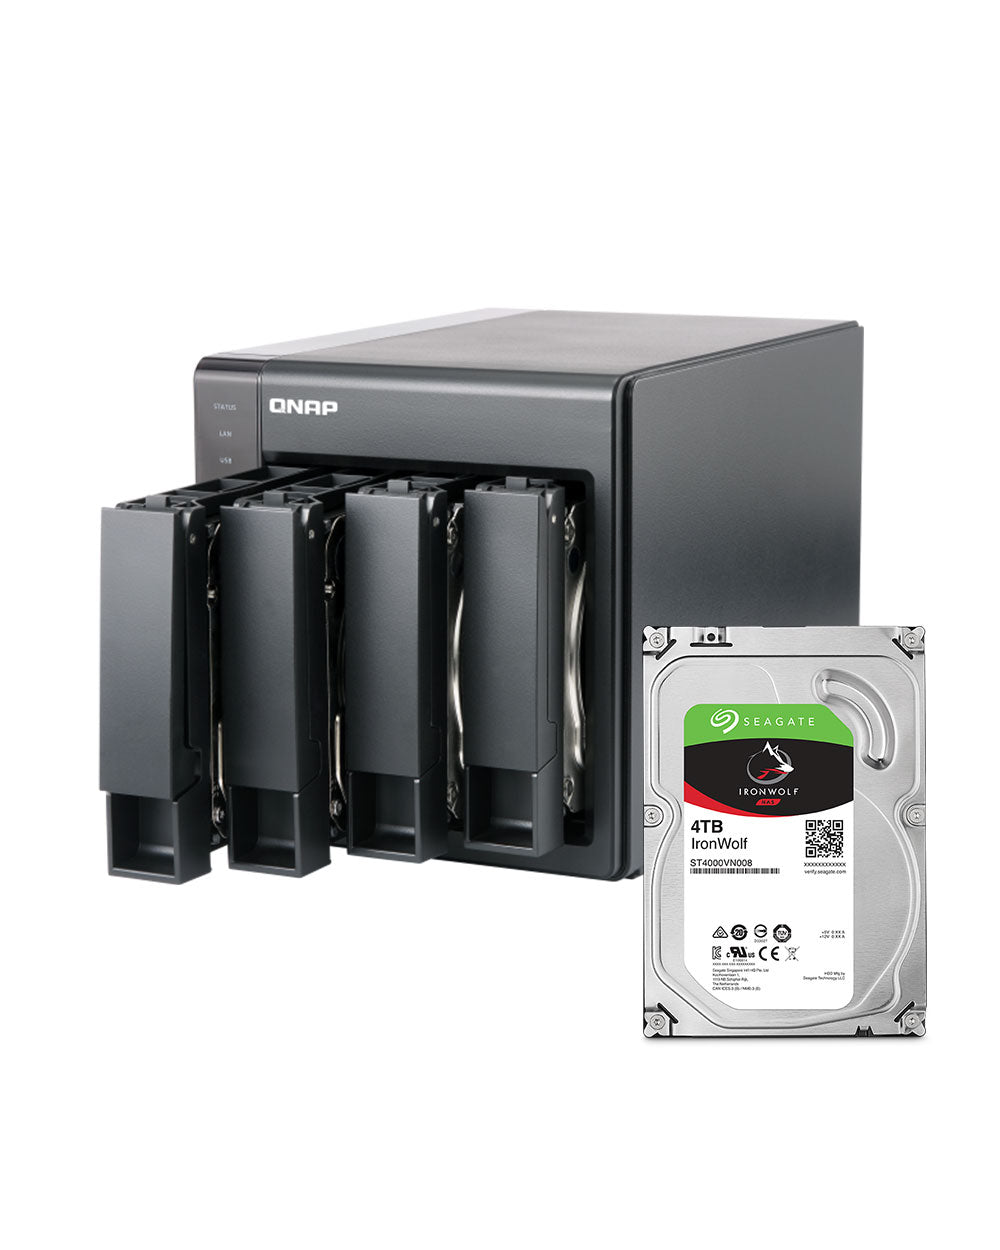 QNAP TS-451+ 2GB 16TB with 4TB Seagate IronWolf Drives